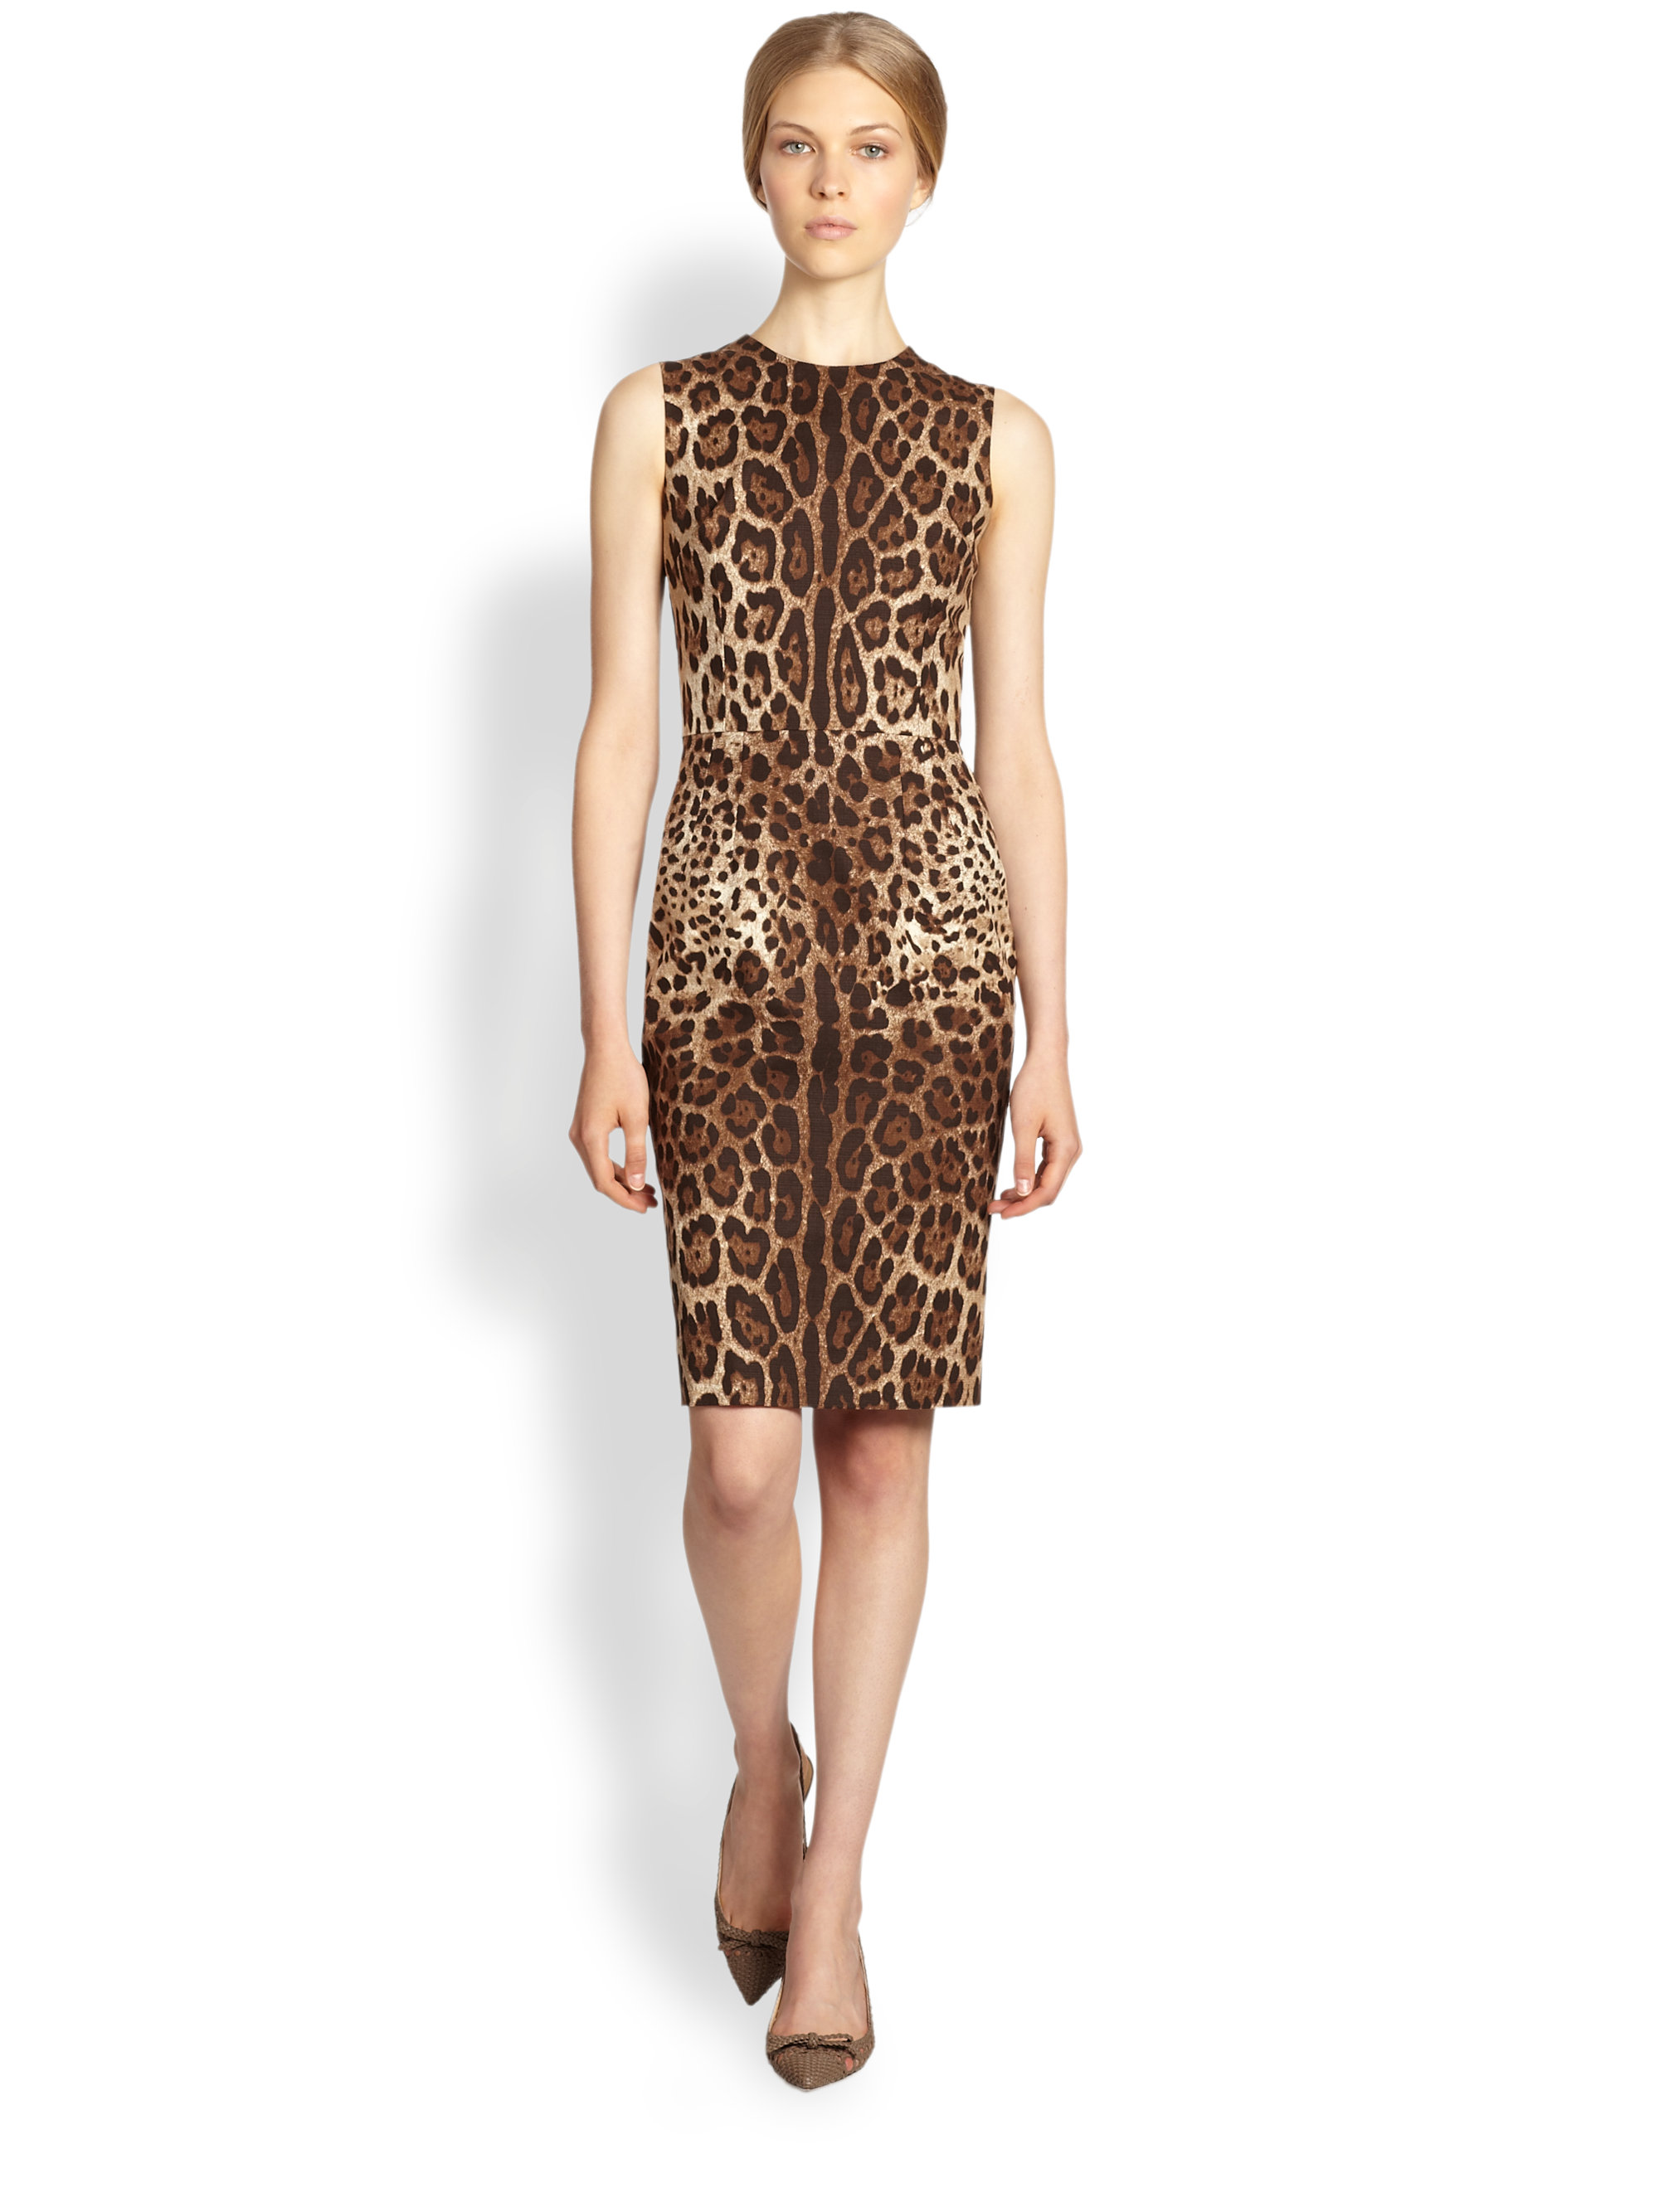 fe0bf890cc Gallery. Previously sold at  Saks Fifth Avenue · Women s Silk Chiffon Dresses  Women s Animal Print ...